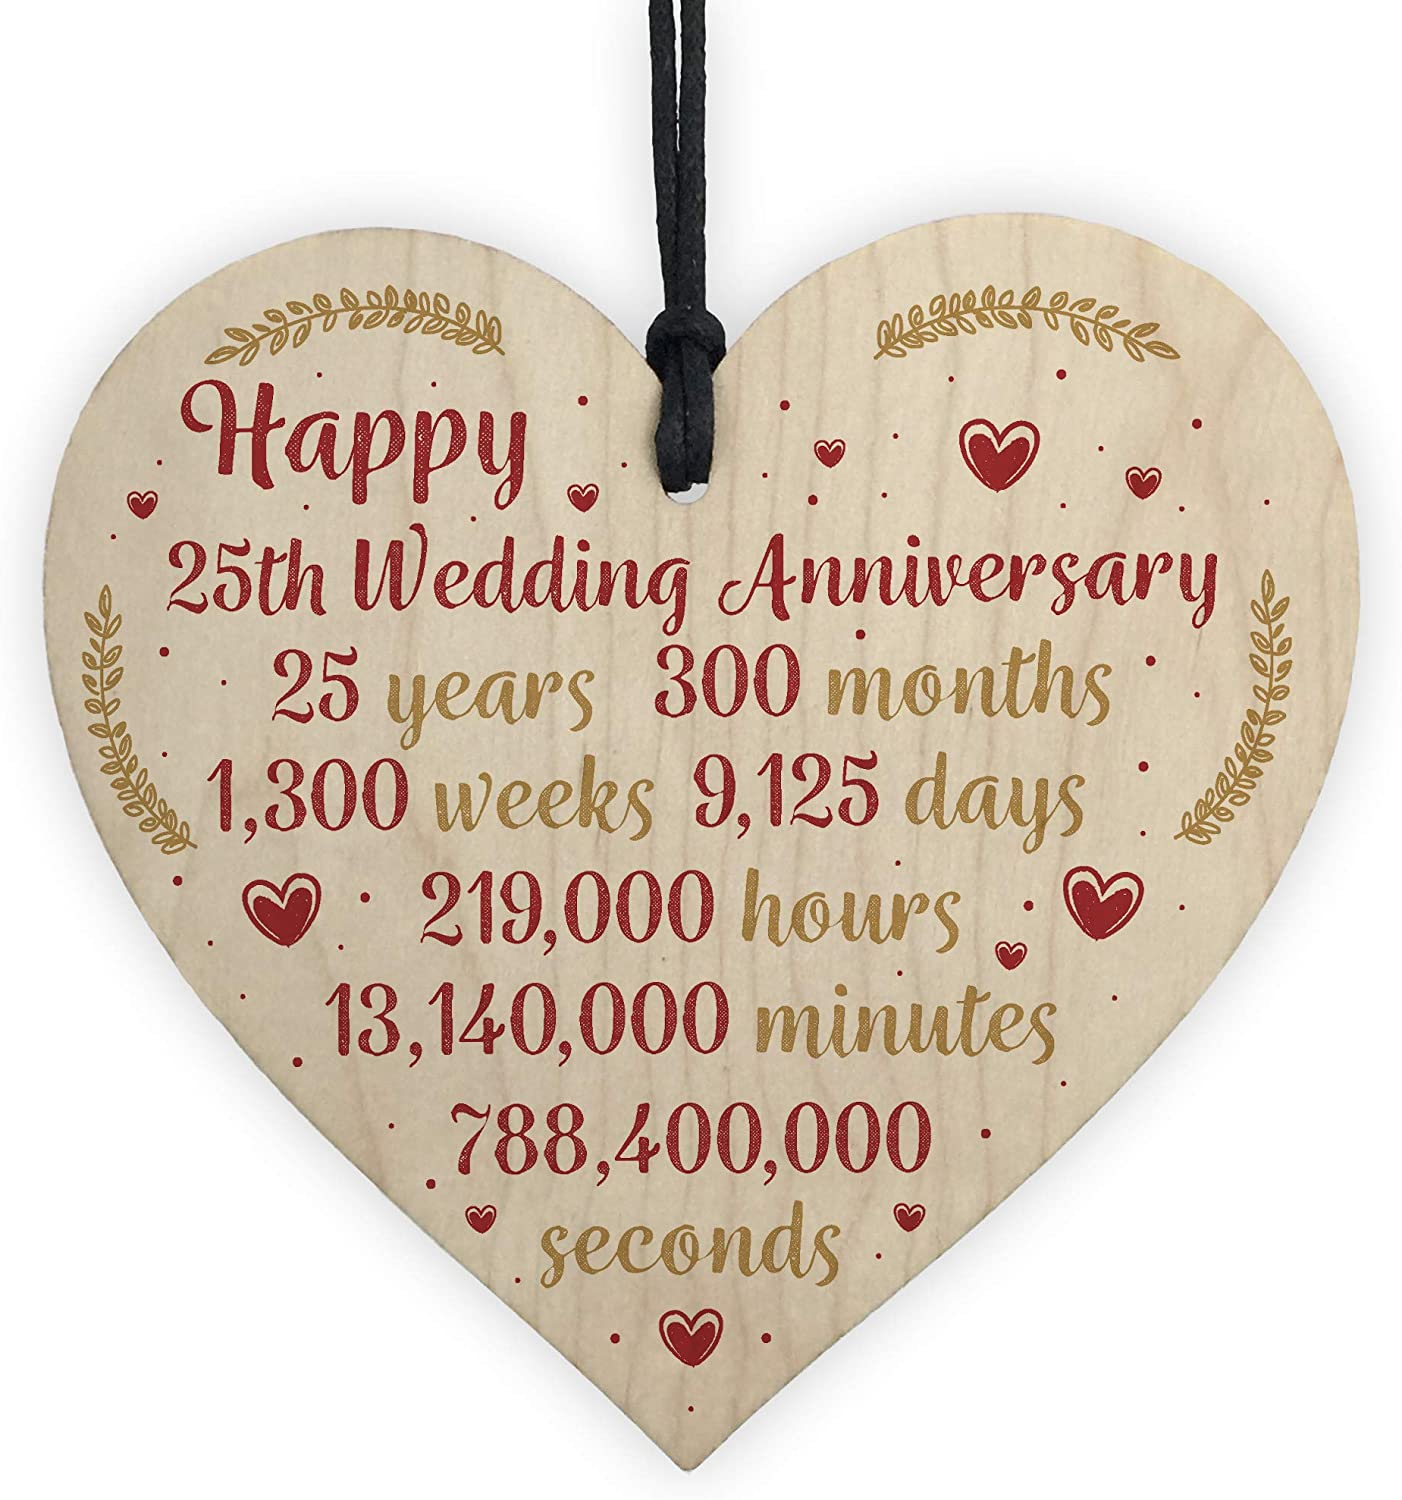 RED OCEAN Happy 10th Wedding Anniversary Card Gift Wooden Heart Silver  Twenty Five Years Husband Wife Keepsake Gift